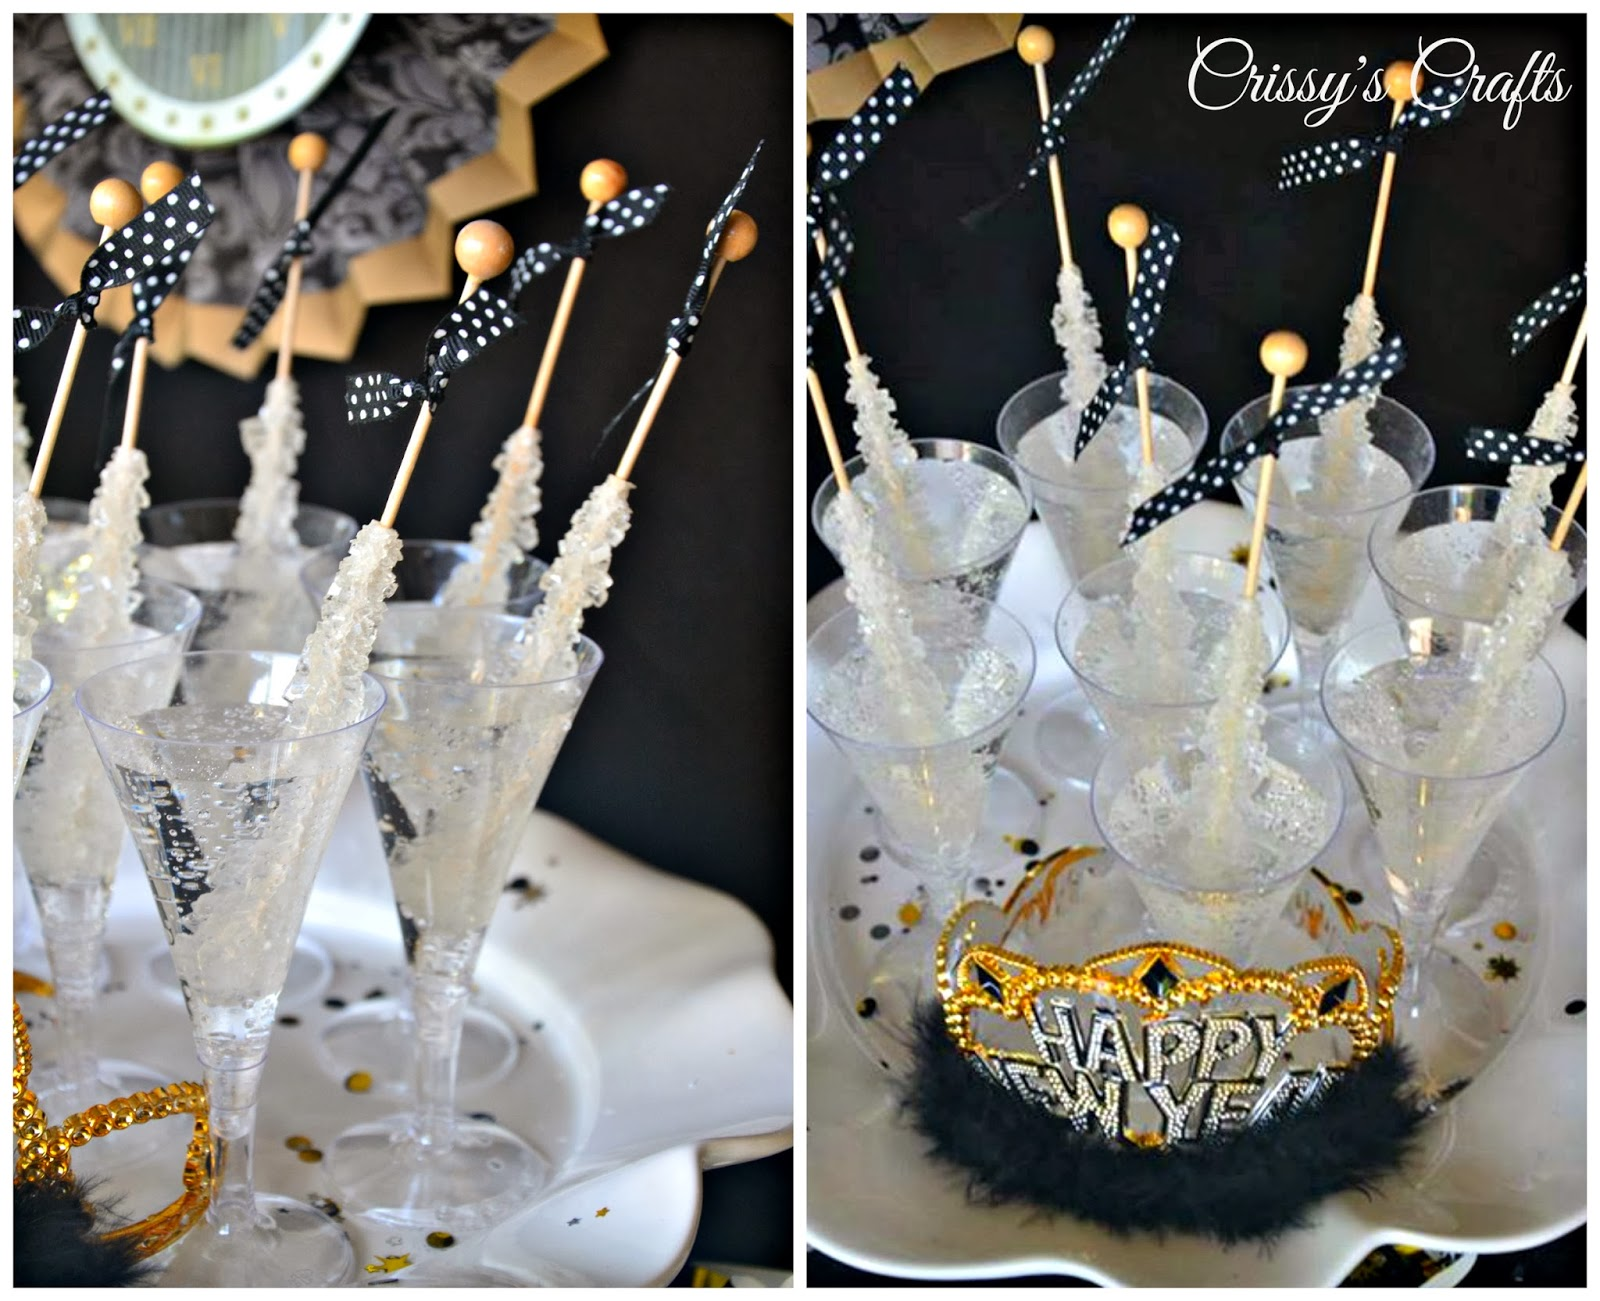 crissys crafts new years eve party ideas